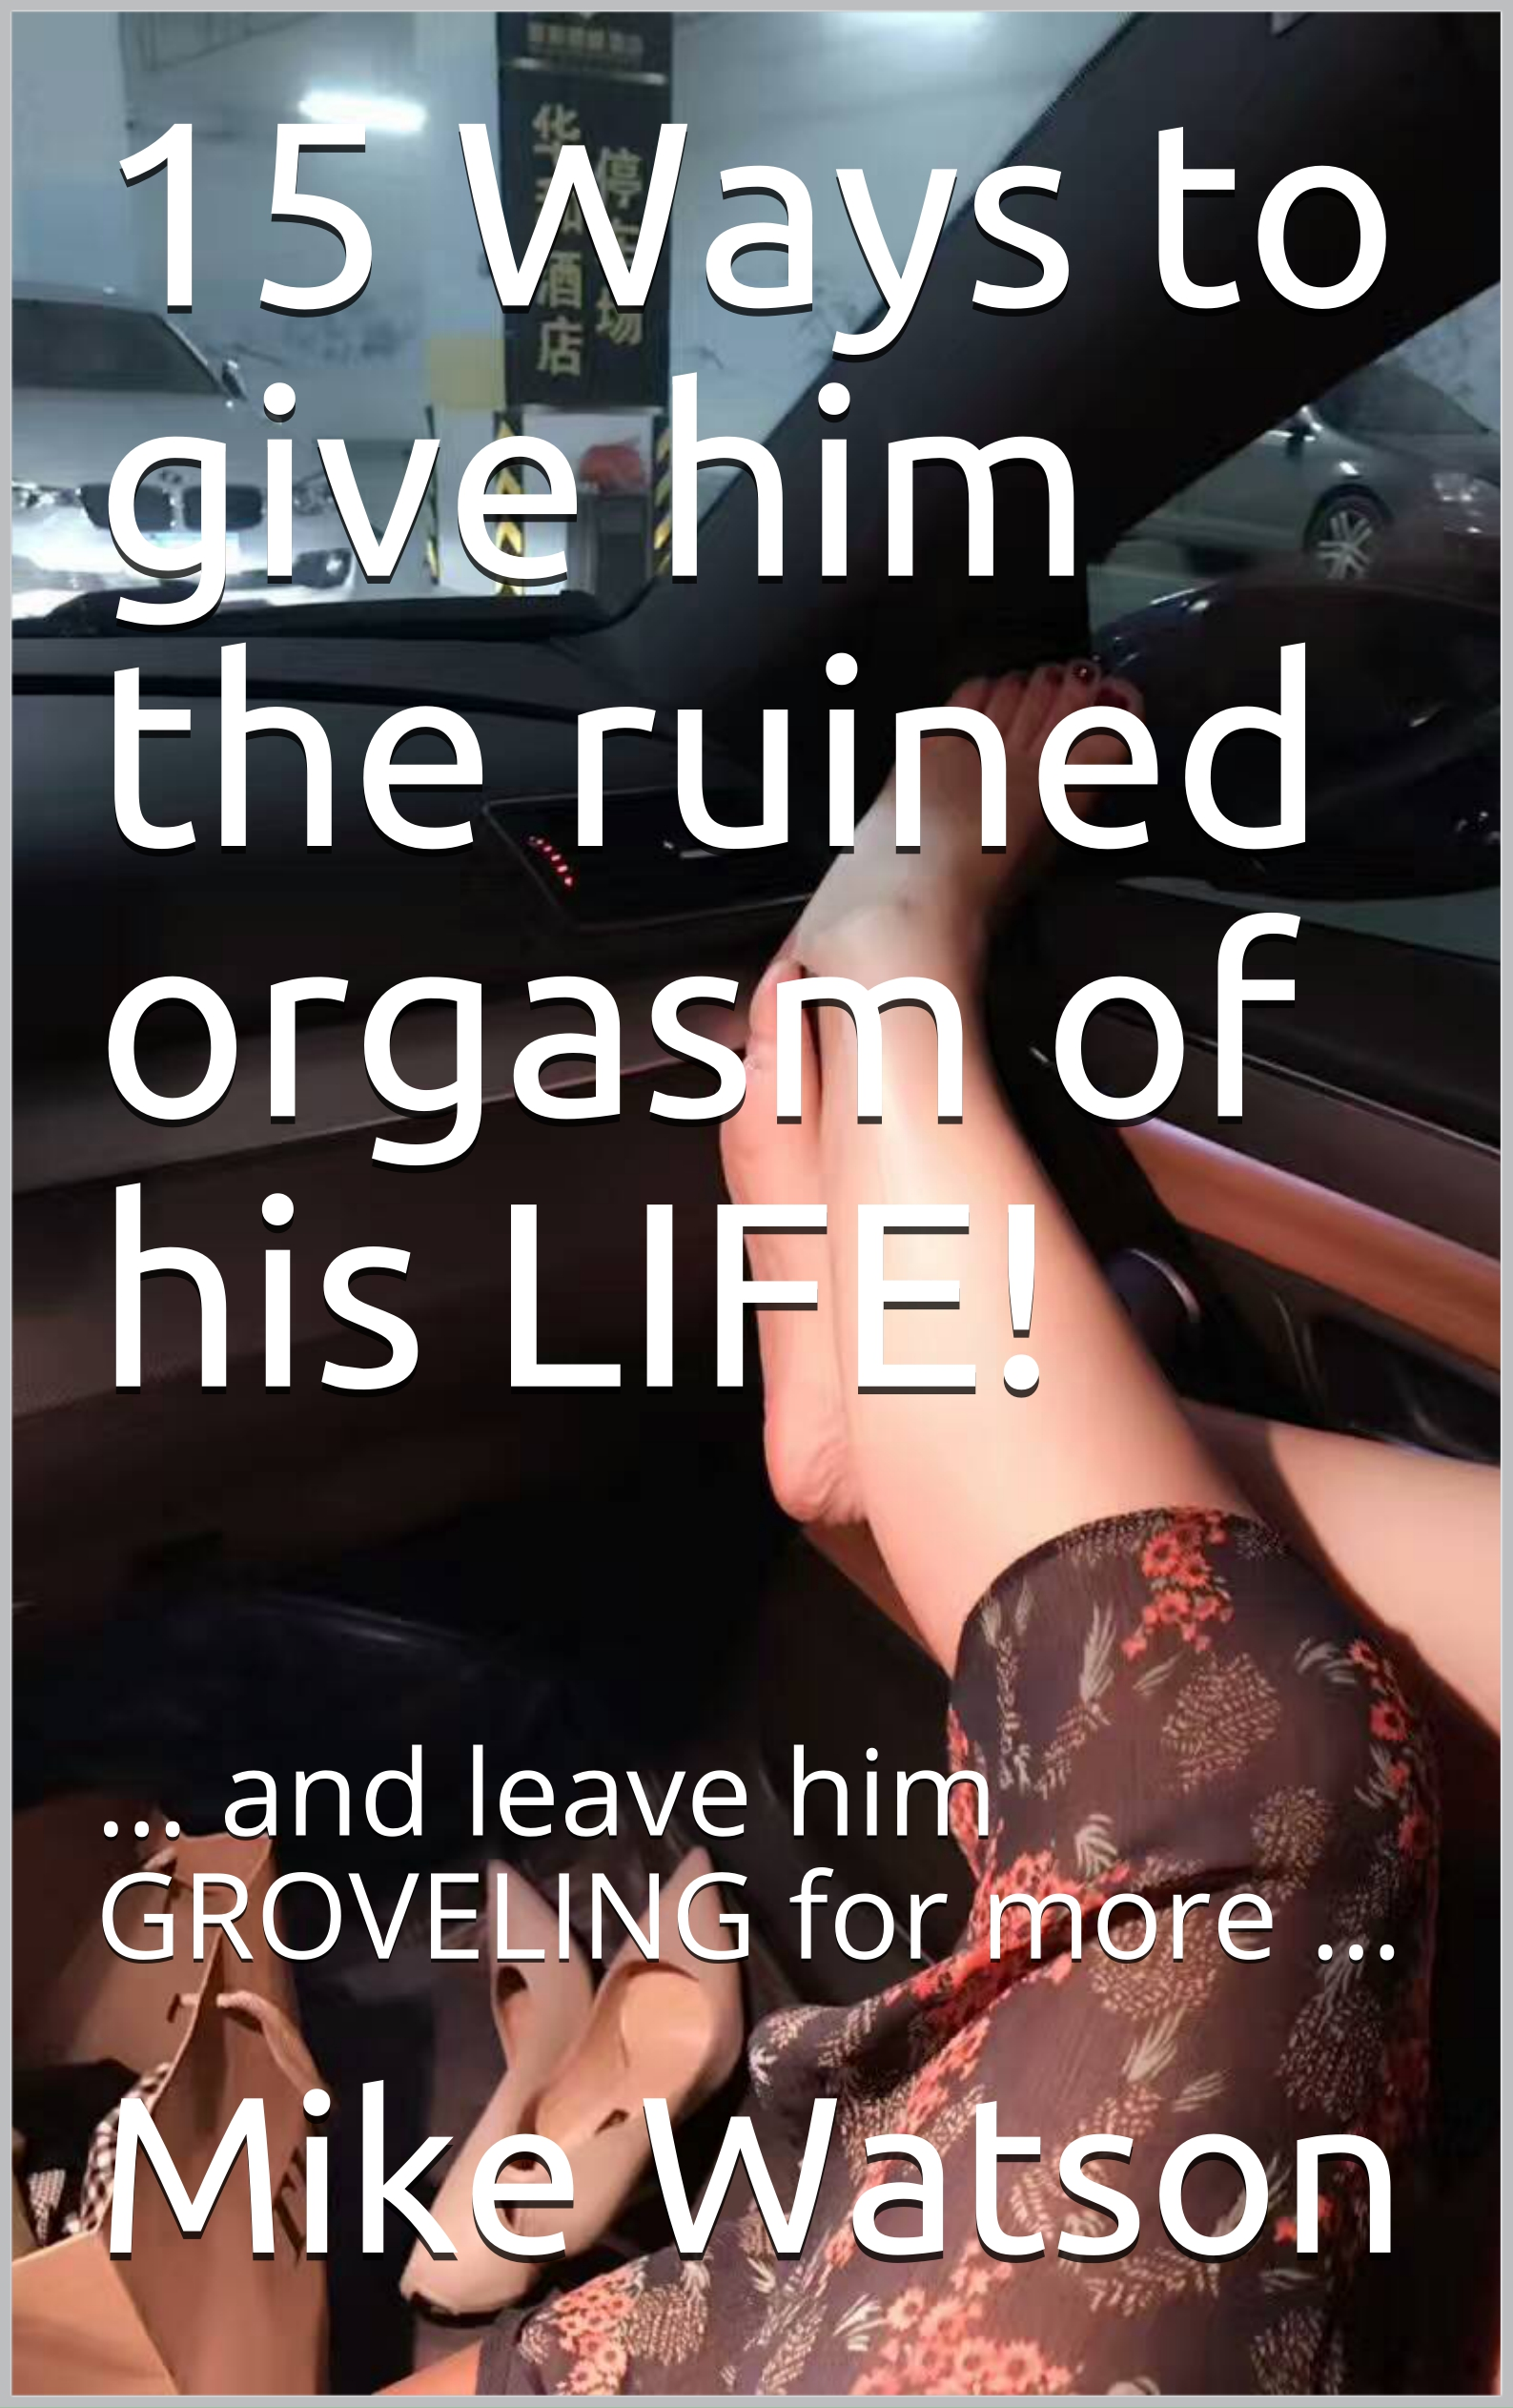 15 ways to give him the ruined orgasm of his life!